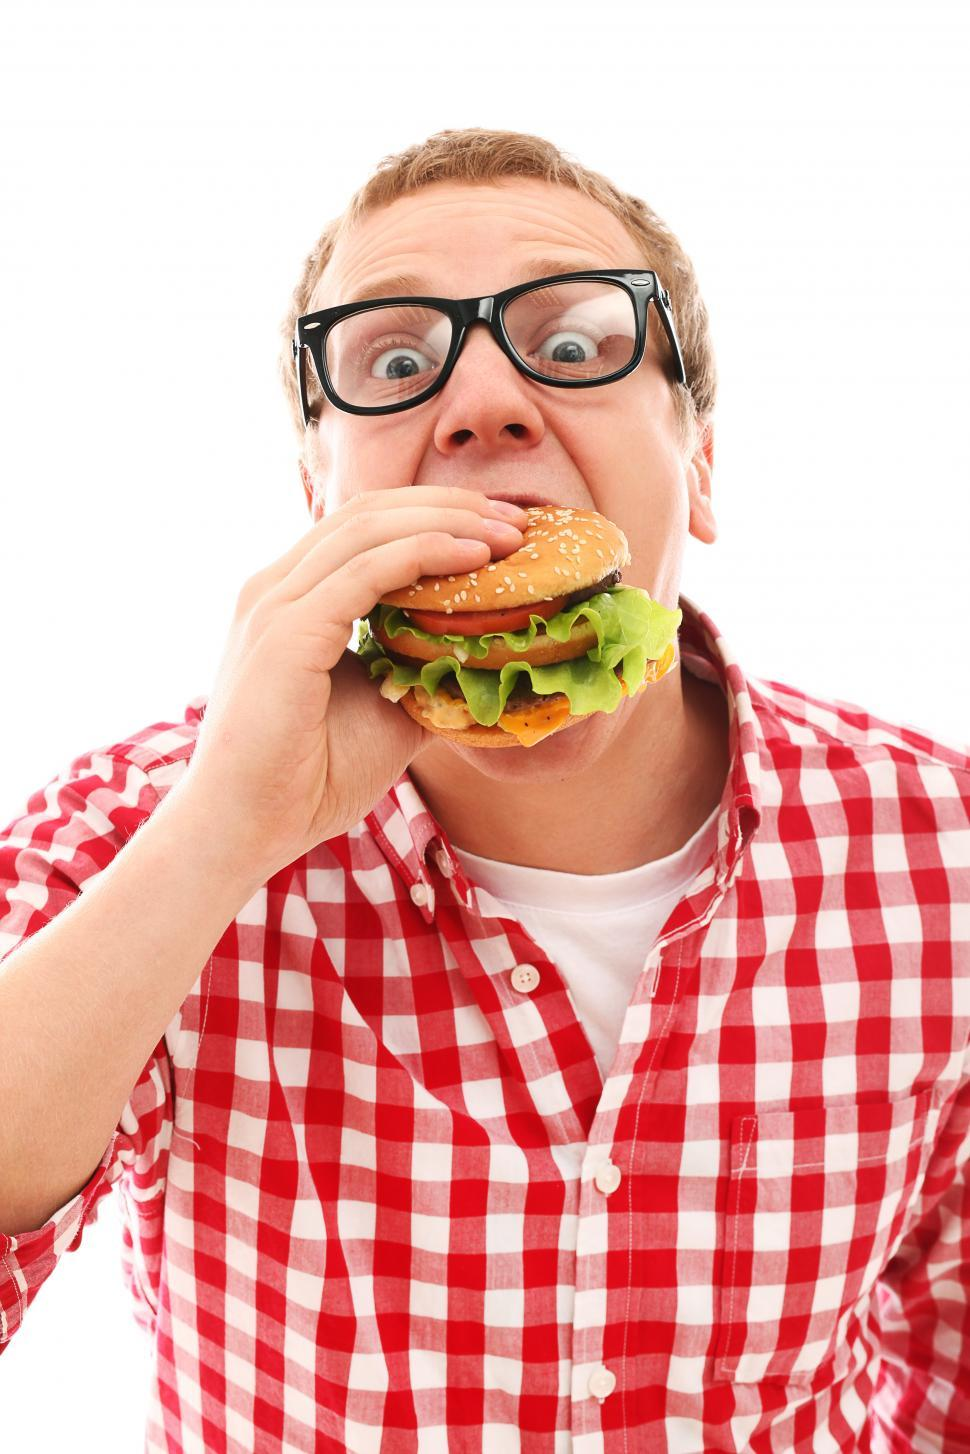 Download Free Stock Photo of Man in plaid attacking a hamburger